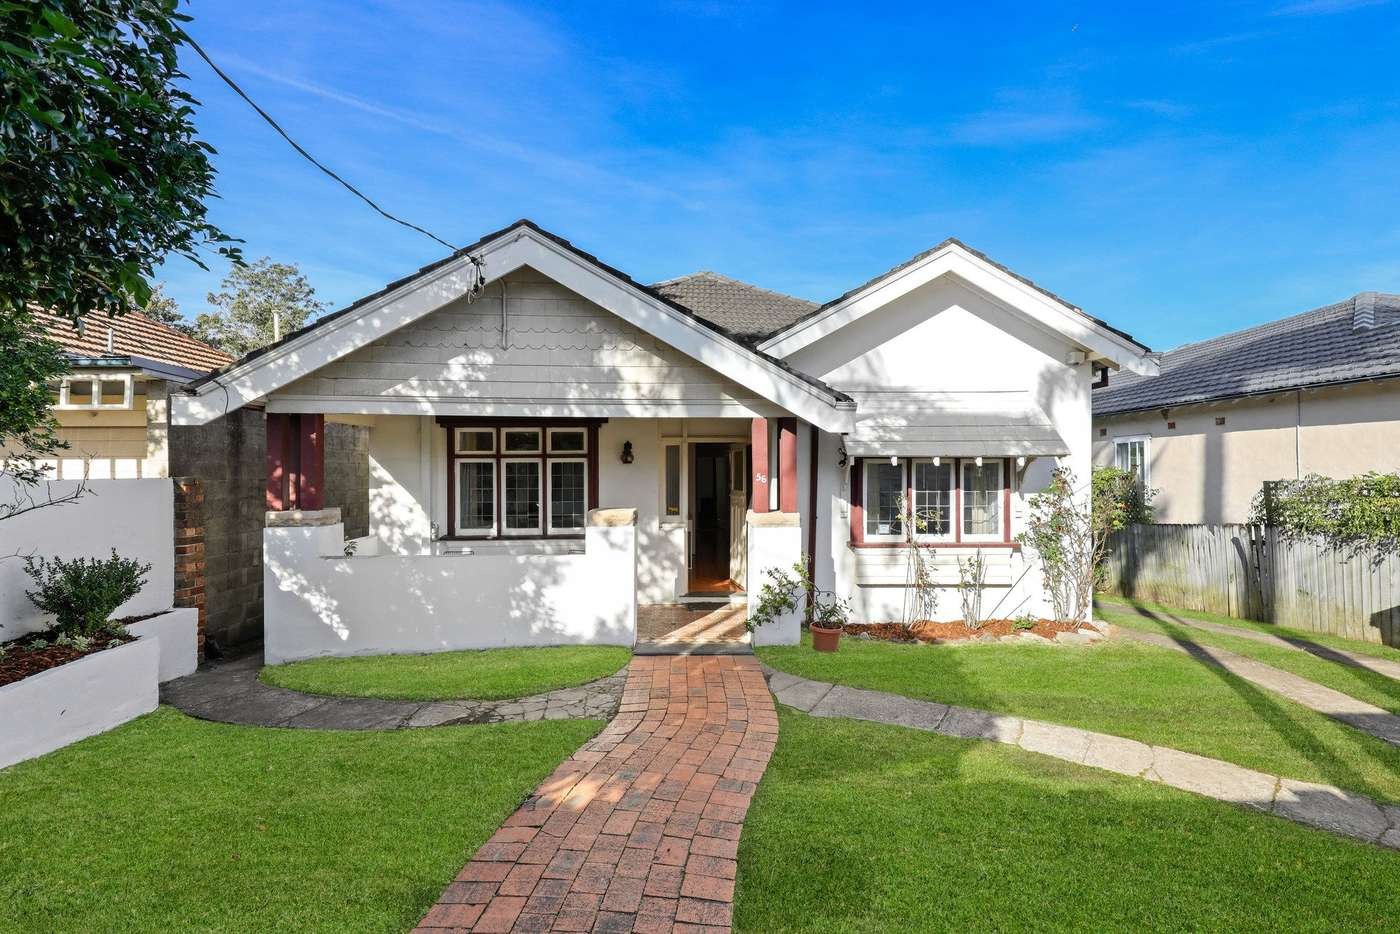 Main view of Homely house listing, 56 Fullers Road, Chatswood NSW 2067